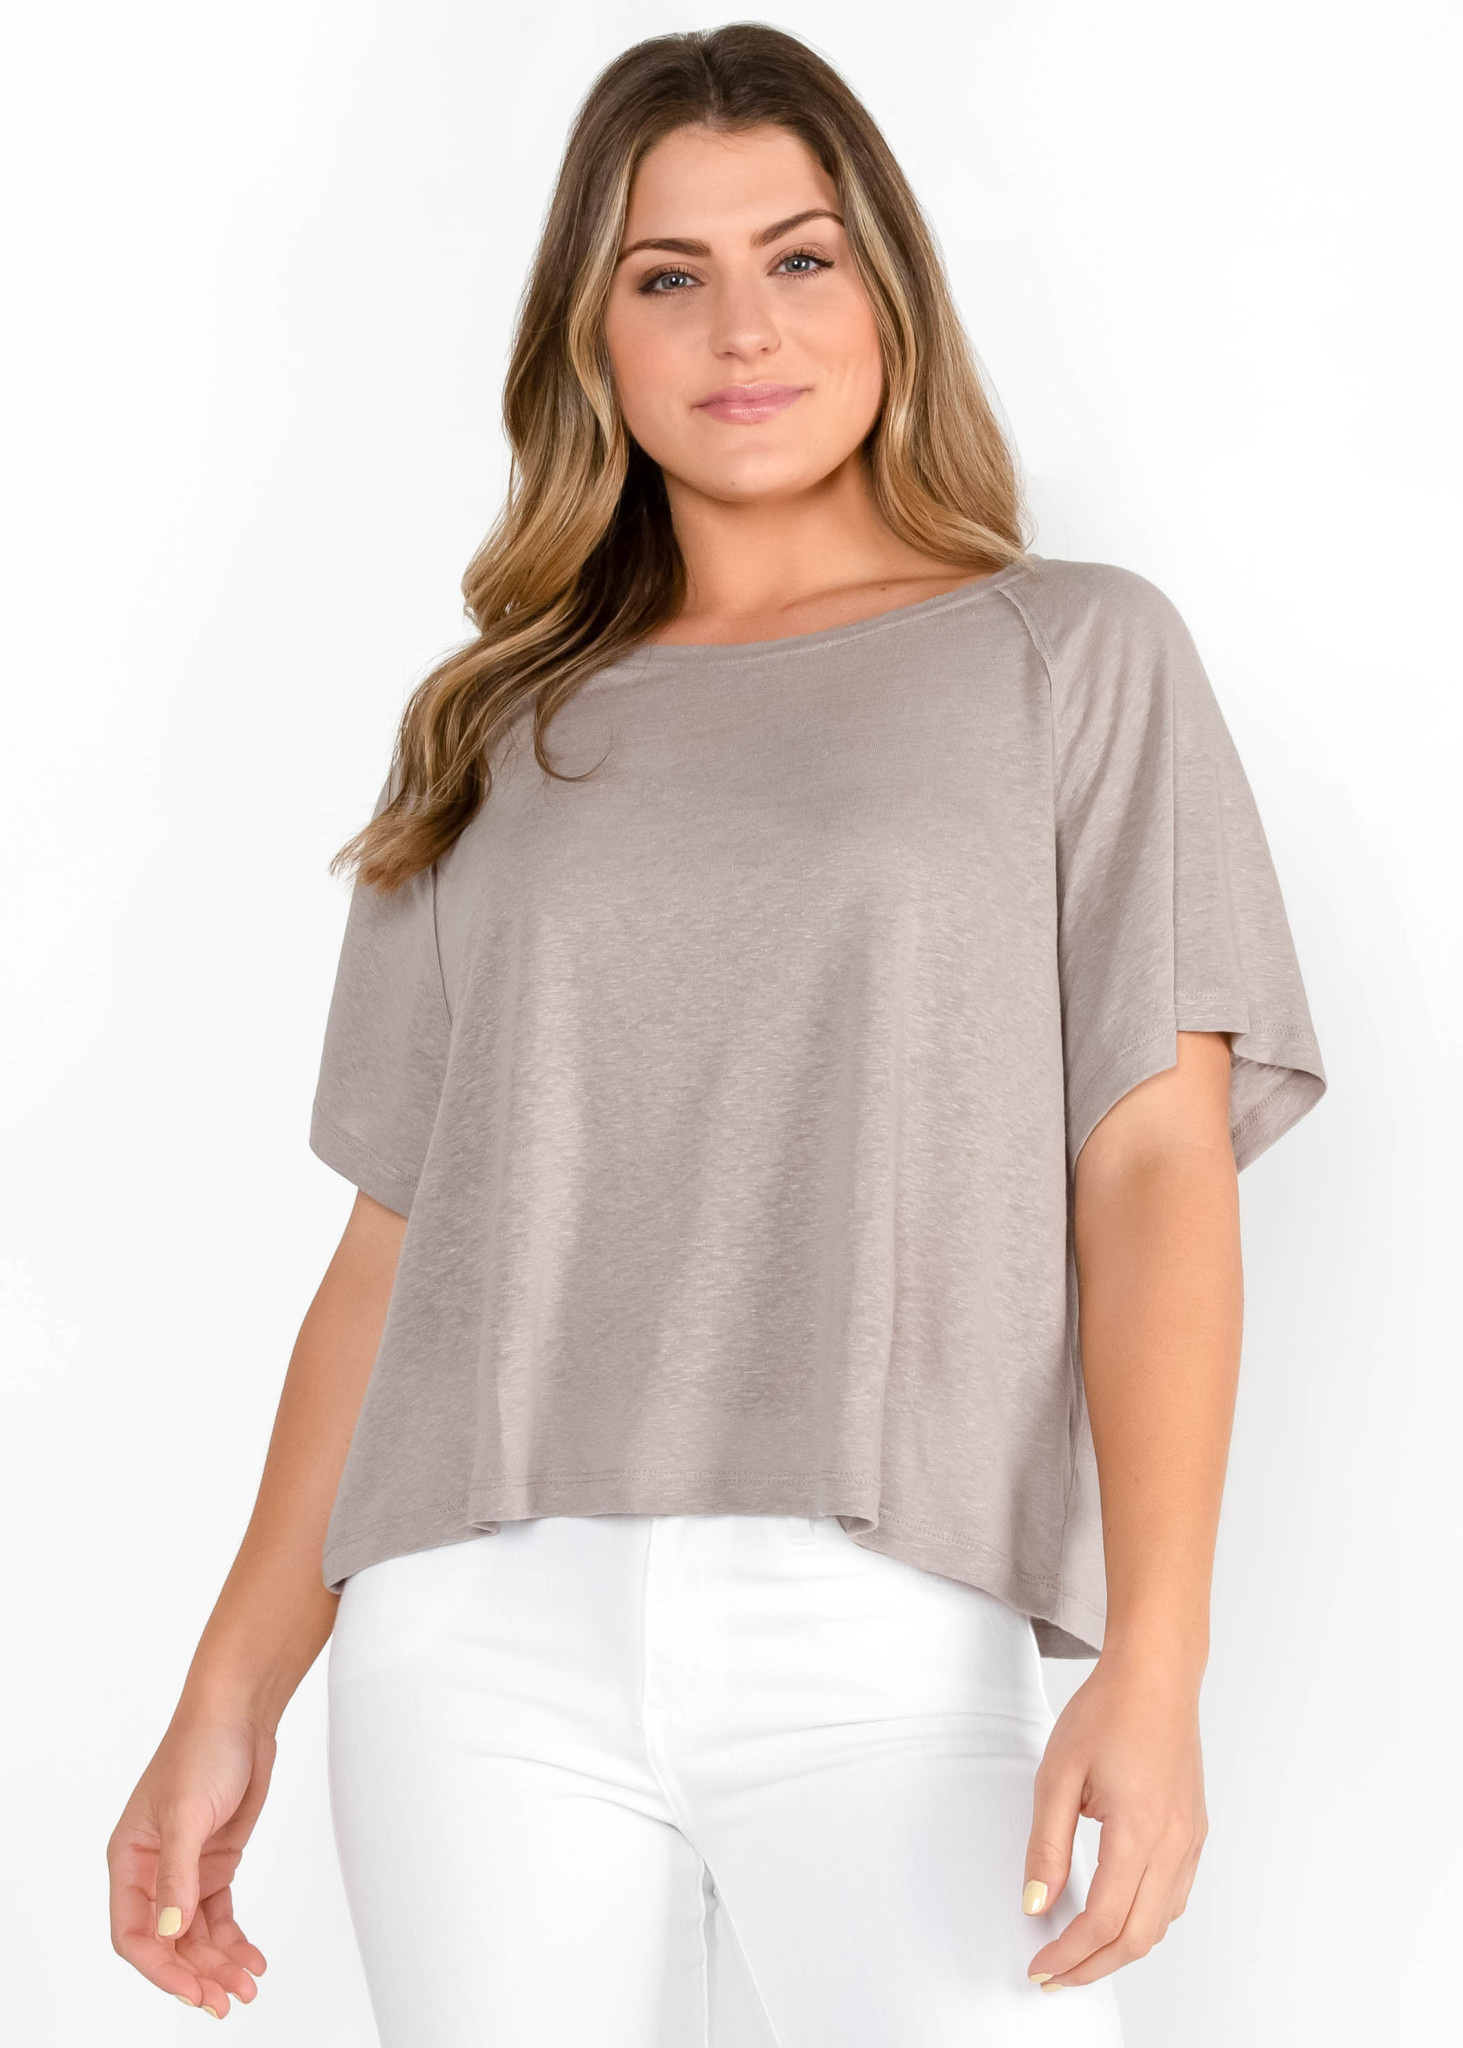 FOR THE WIN TAUPE T-SHIRT